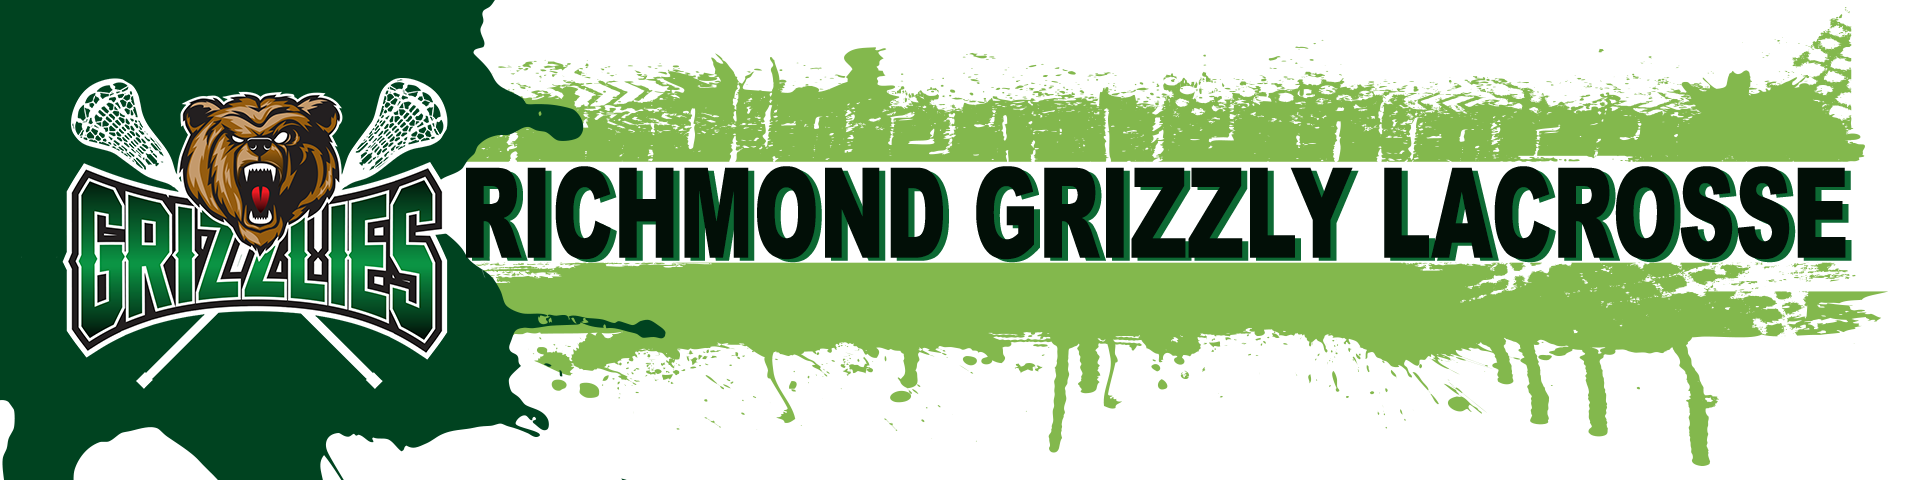 Richmond Grizzly, Lacrosse, Goal, Field